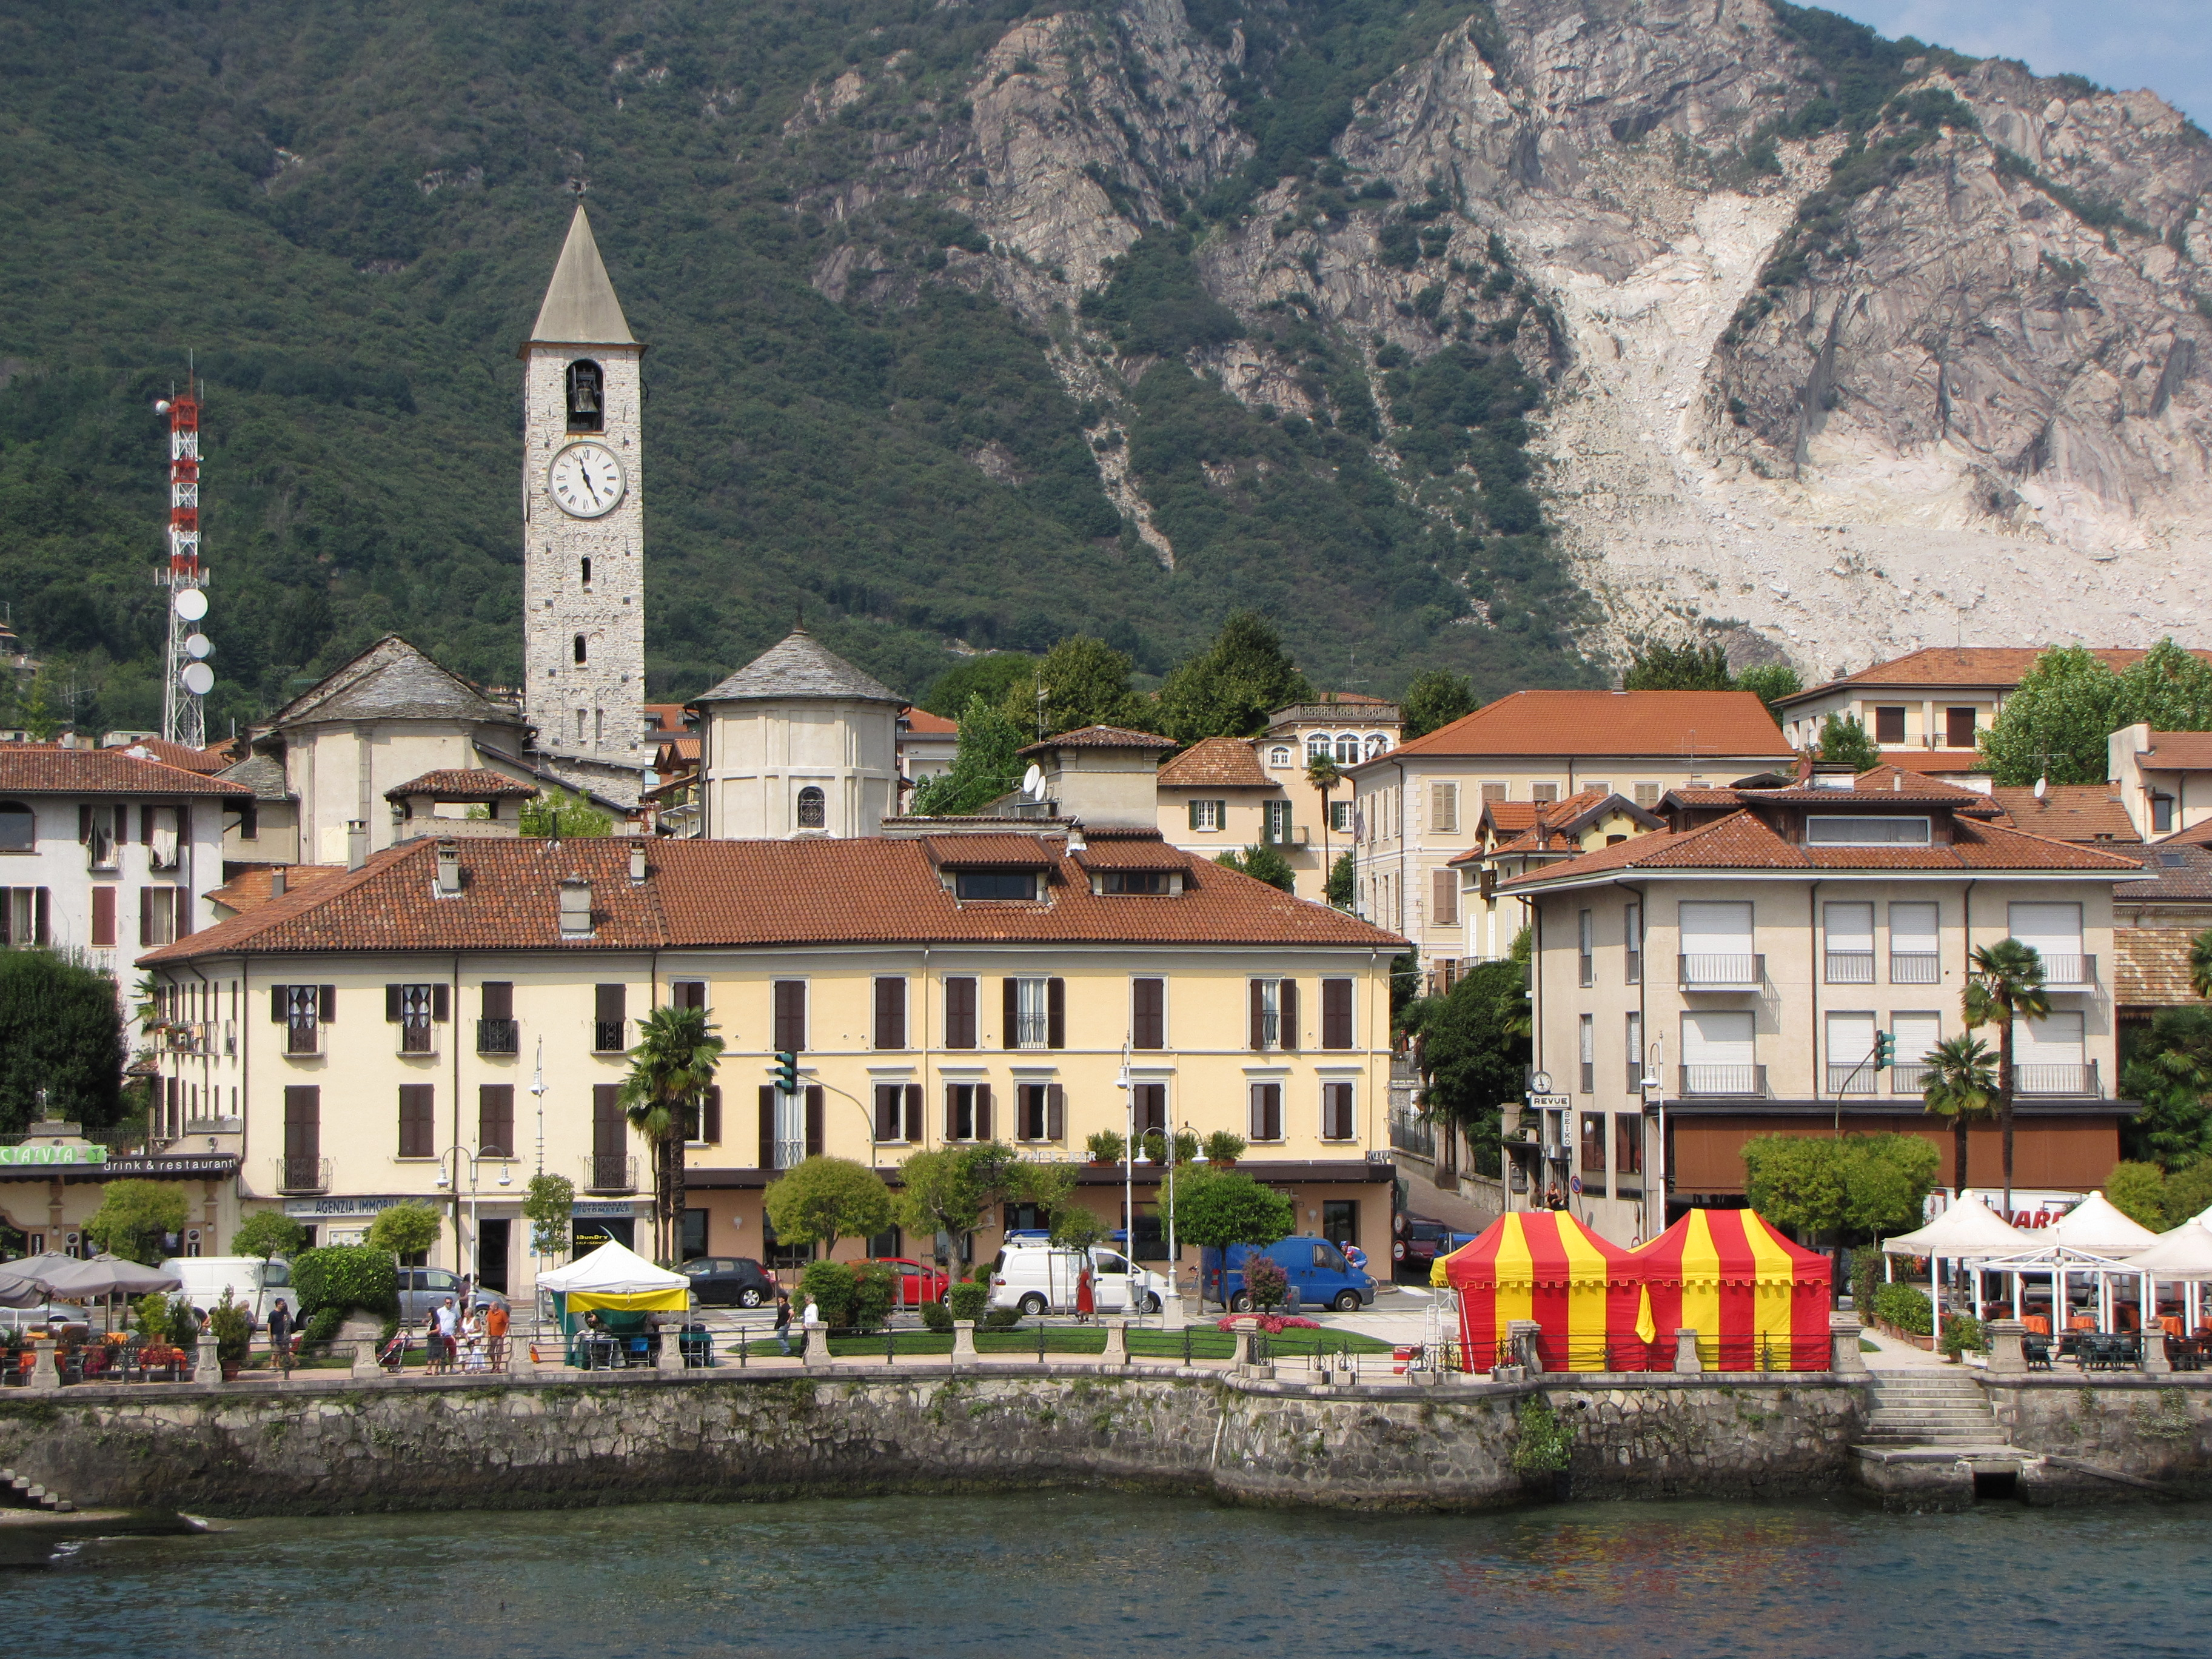 Lake Maggiore: One of the little towns seen from the ferry